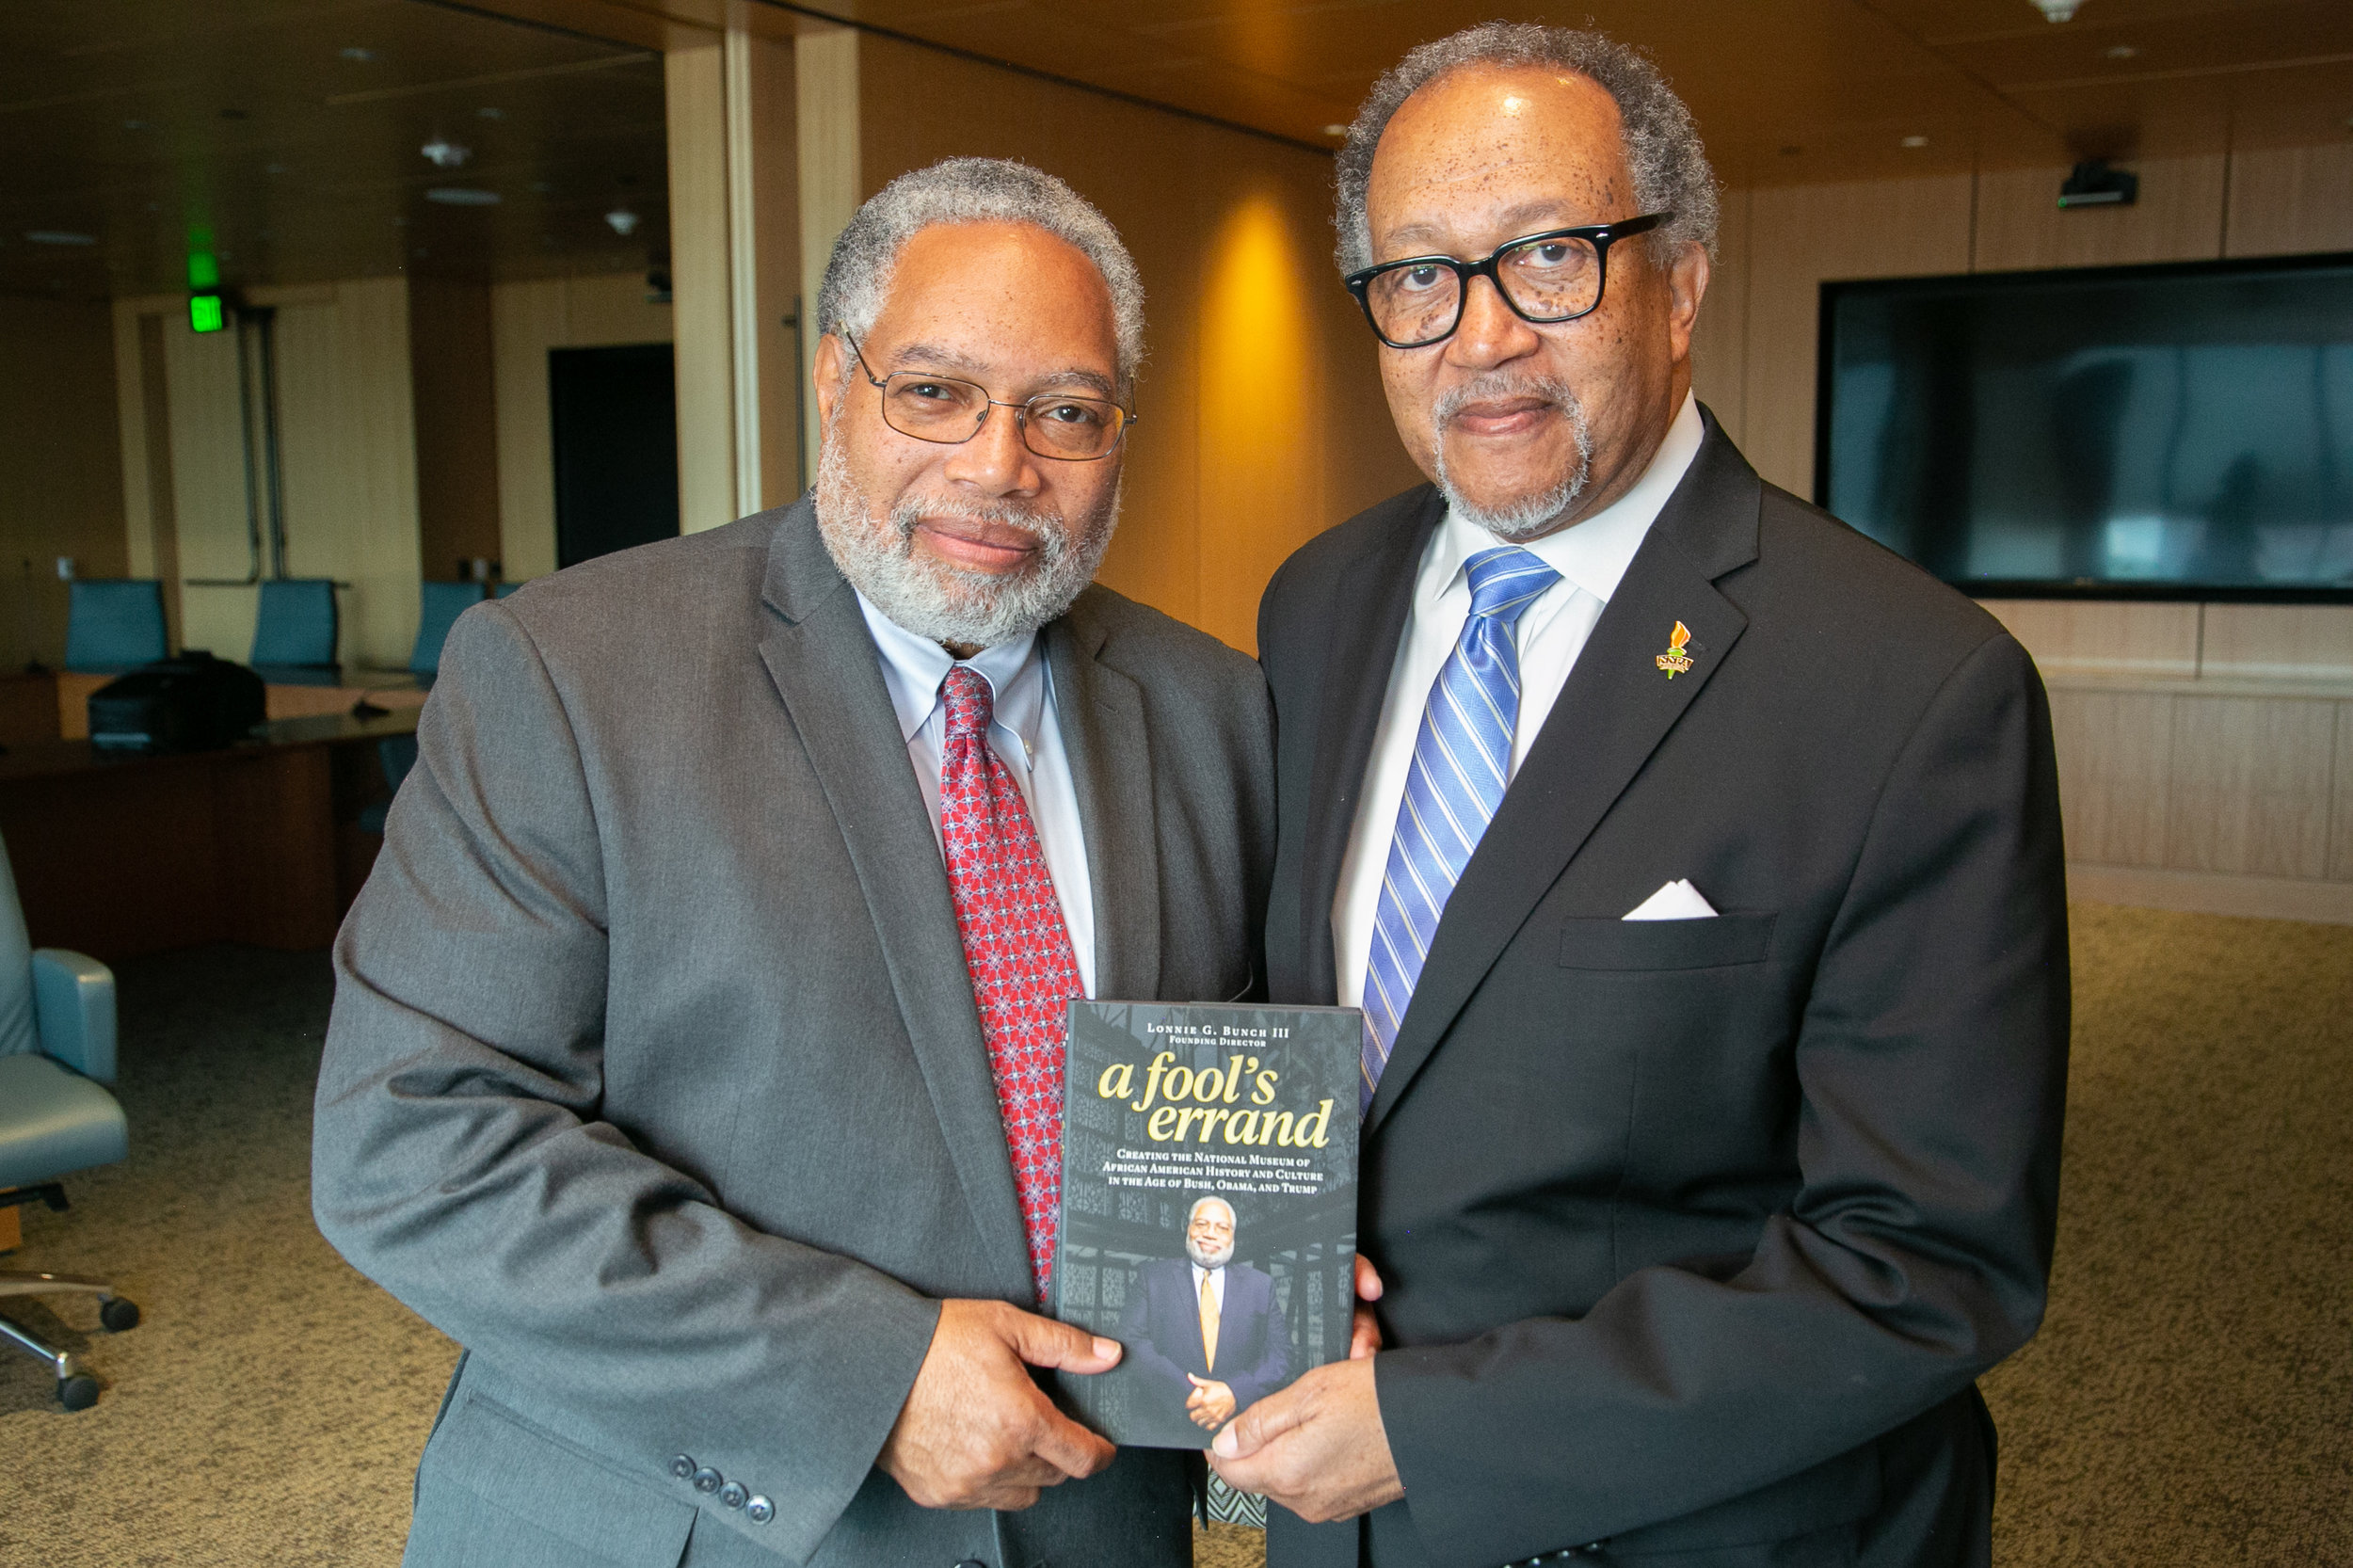 Dr. Lonnie Bunch III, the 14th Secretary of the Smithsonian Institution, sat down for an exclusive interview with National Newspaper Publishers Association (NNPA) President and CEO Dr. Benjamin F. Chavis, Jr. The two discussed Bunch's timely new book released today,